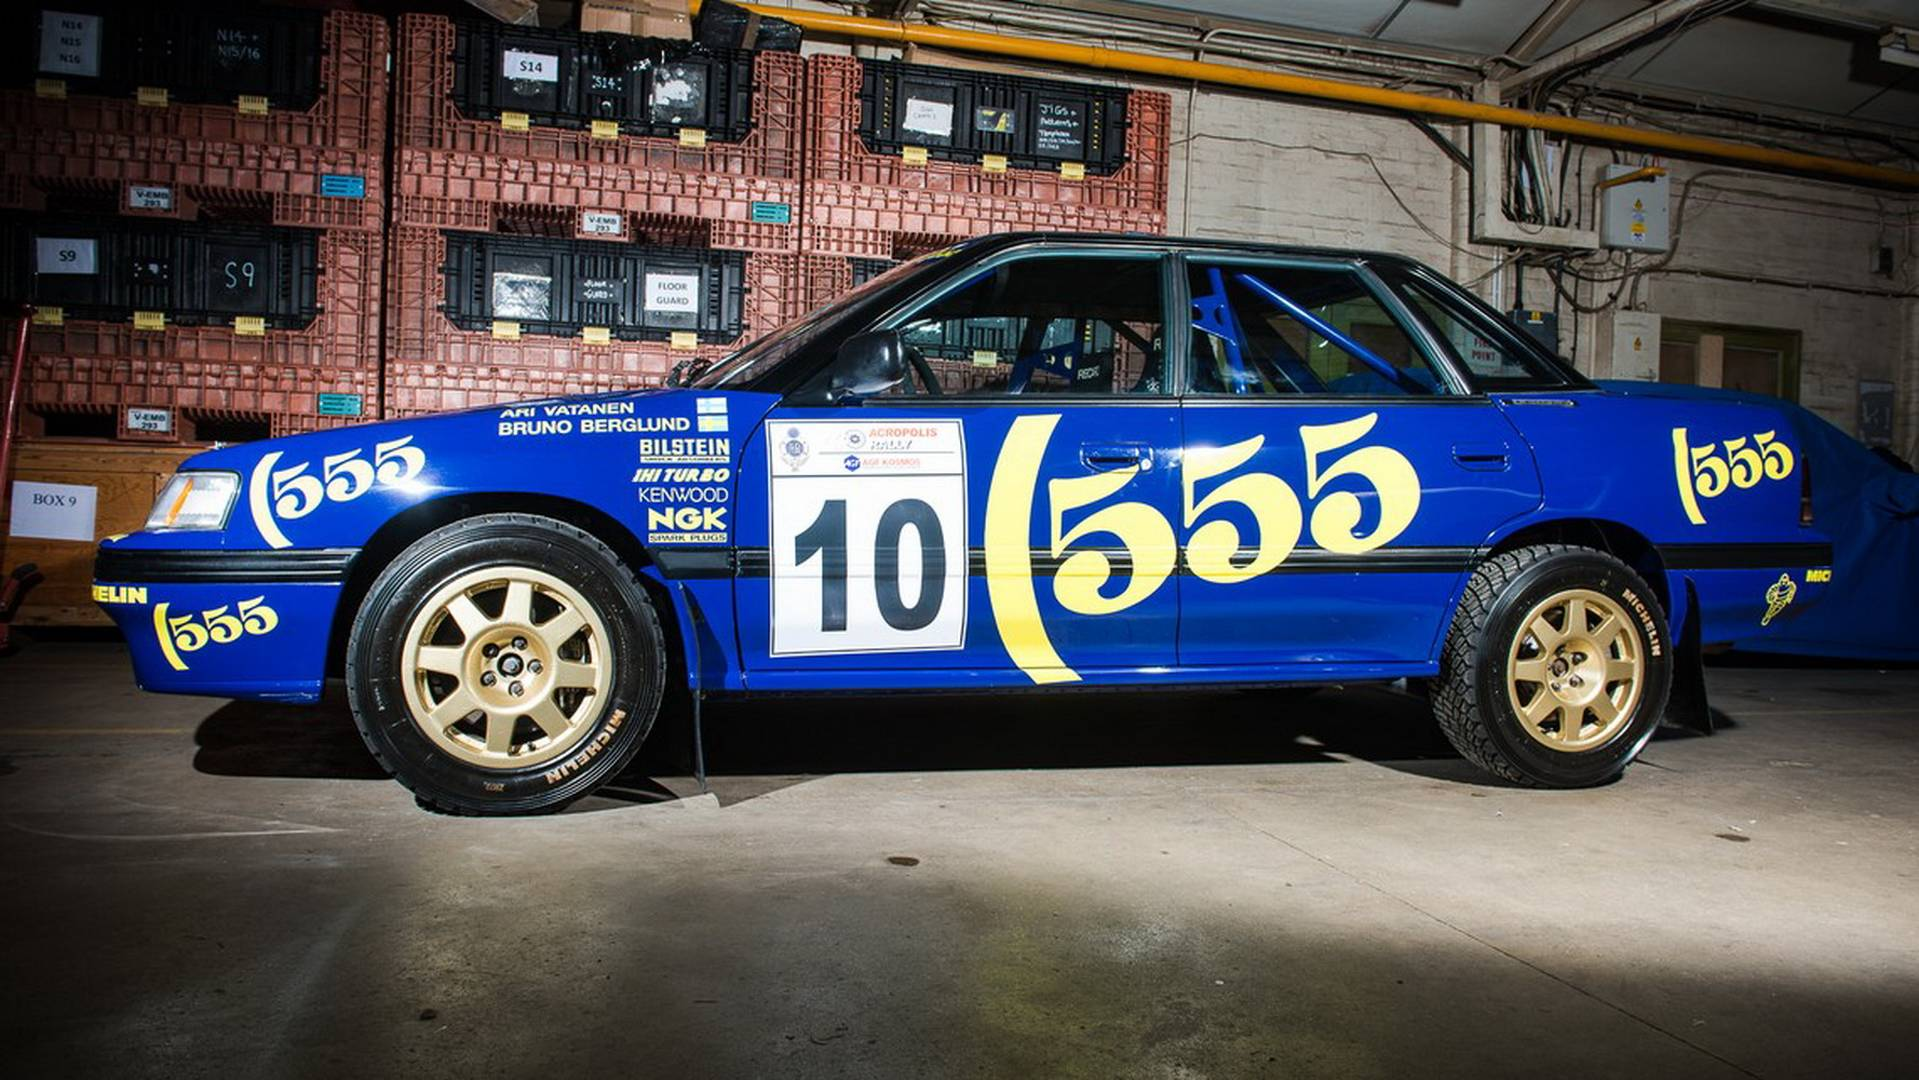 Magnificent Rally Cars For Sale Us Images - Classic Cars Ideas ...